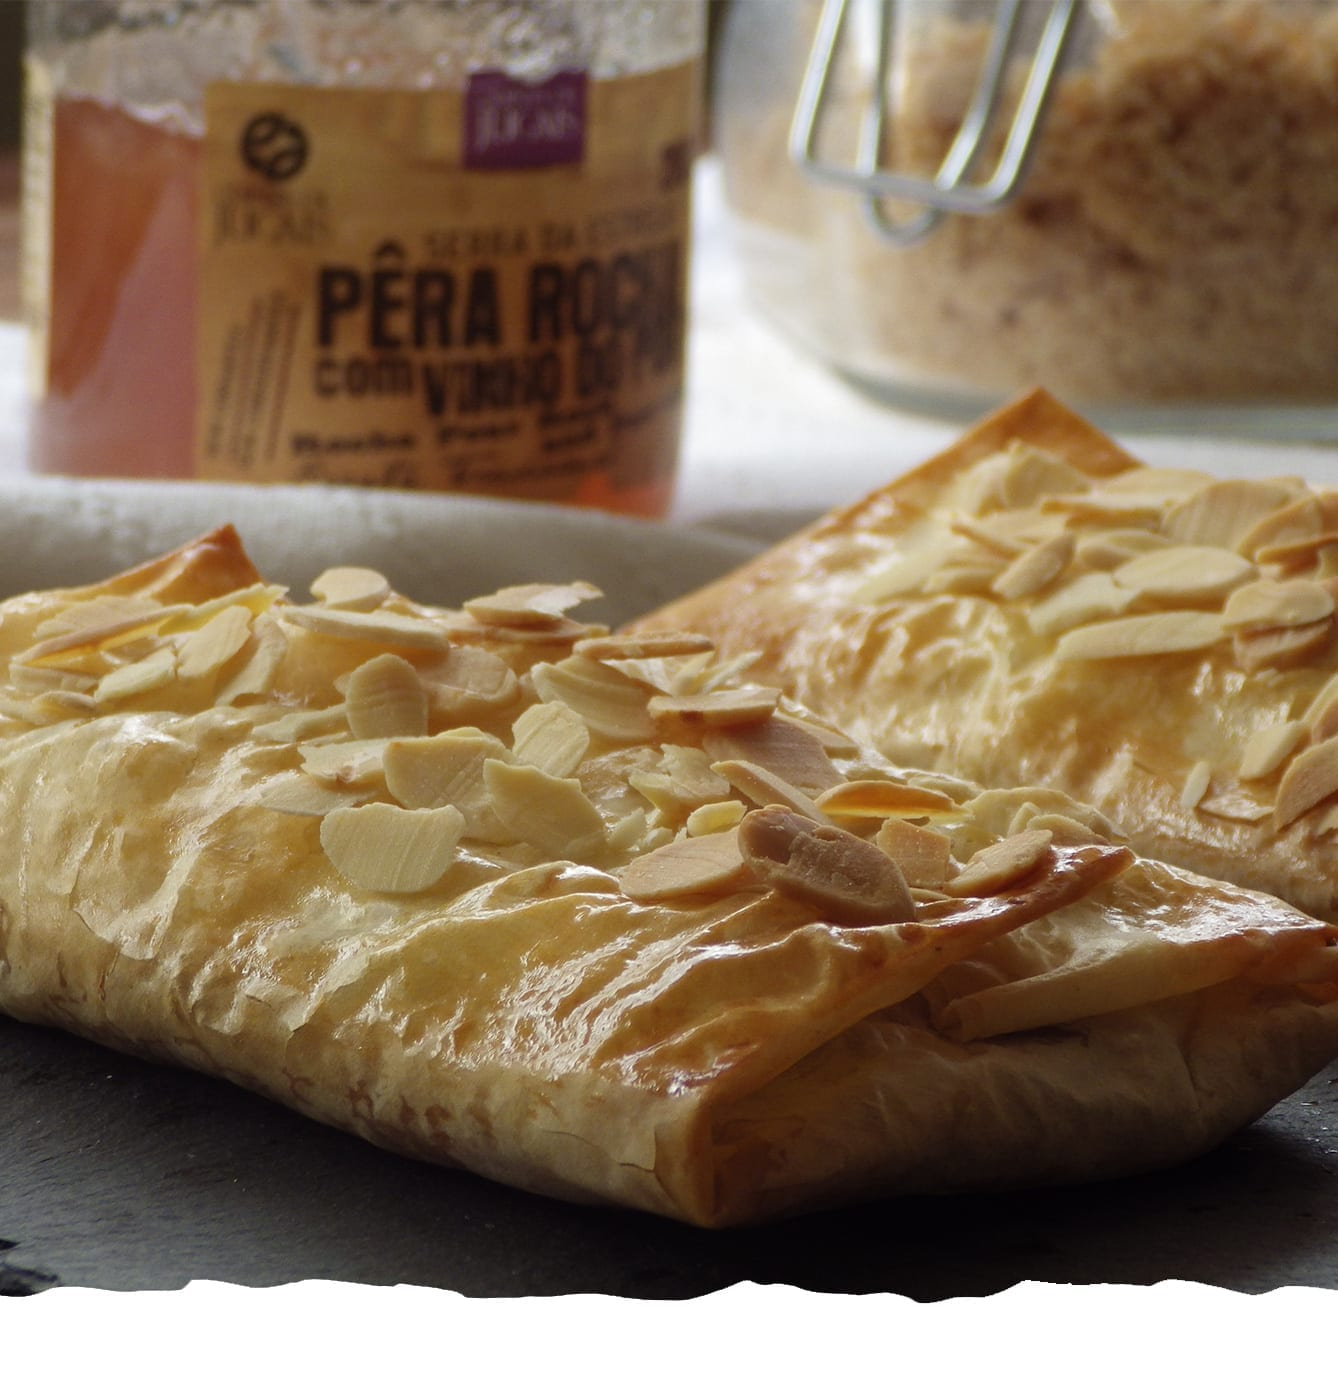 Phyllo Pastry Pillows with Pear Mobile